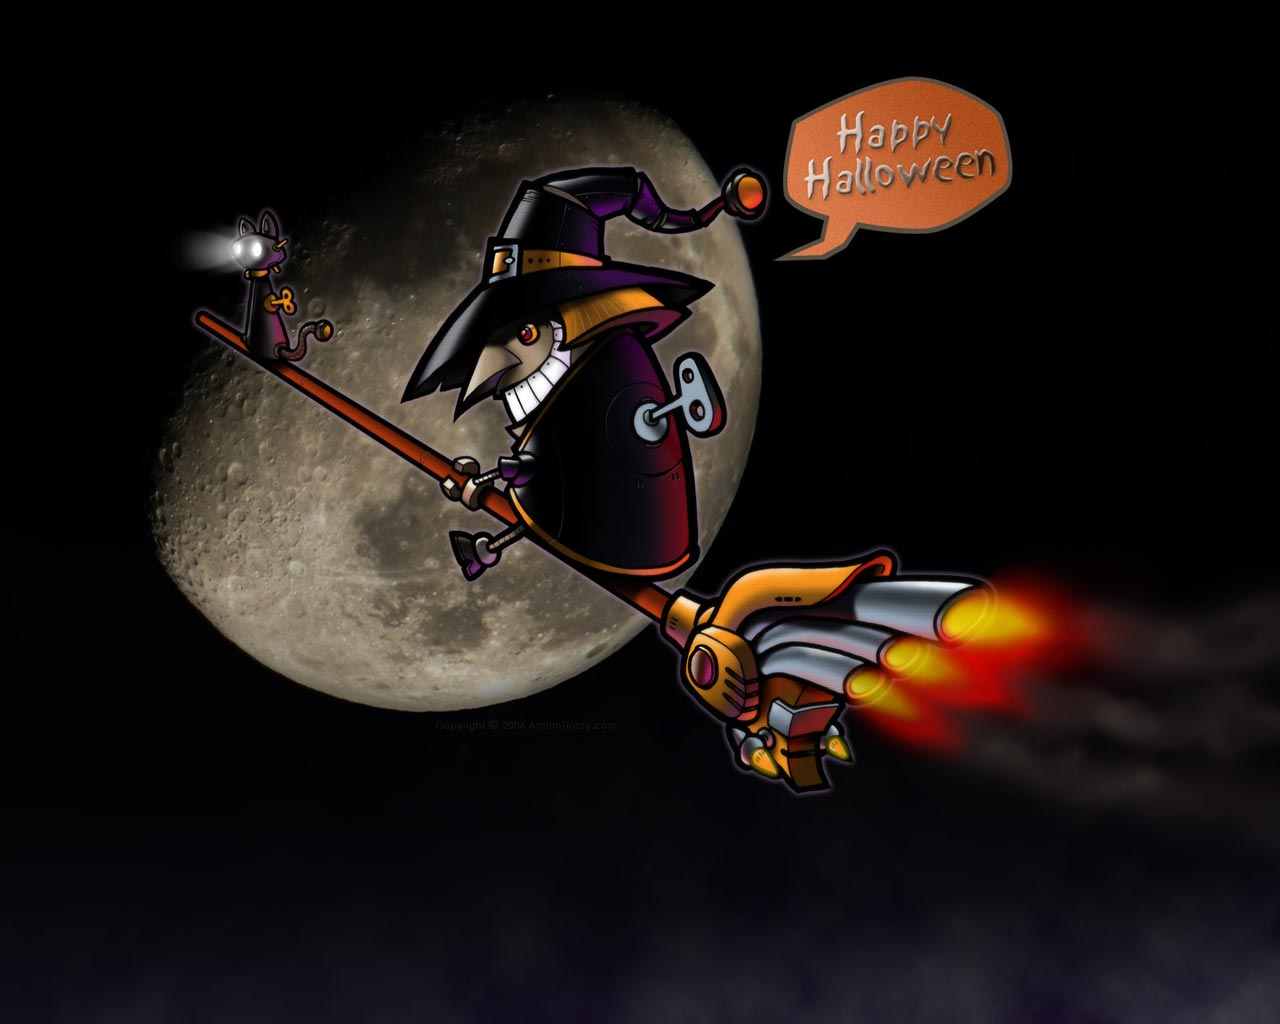 Stunning HD Wallpapers For Your Desktop 8 Halloween Edition